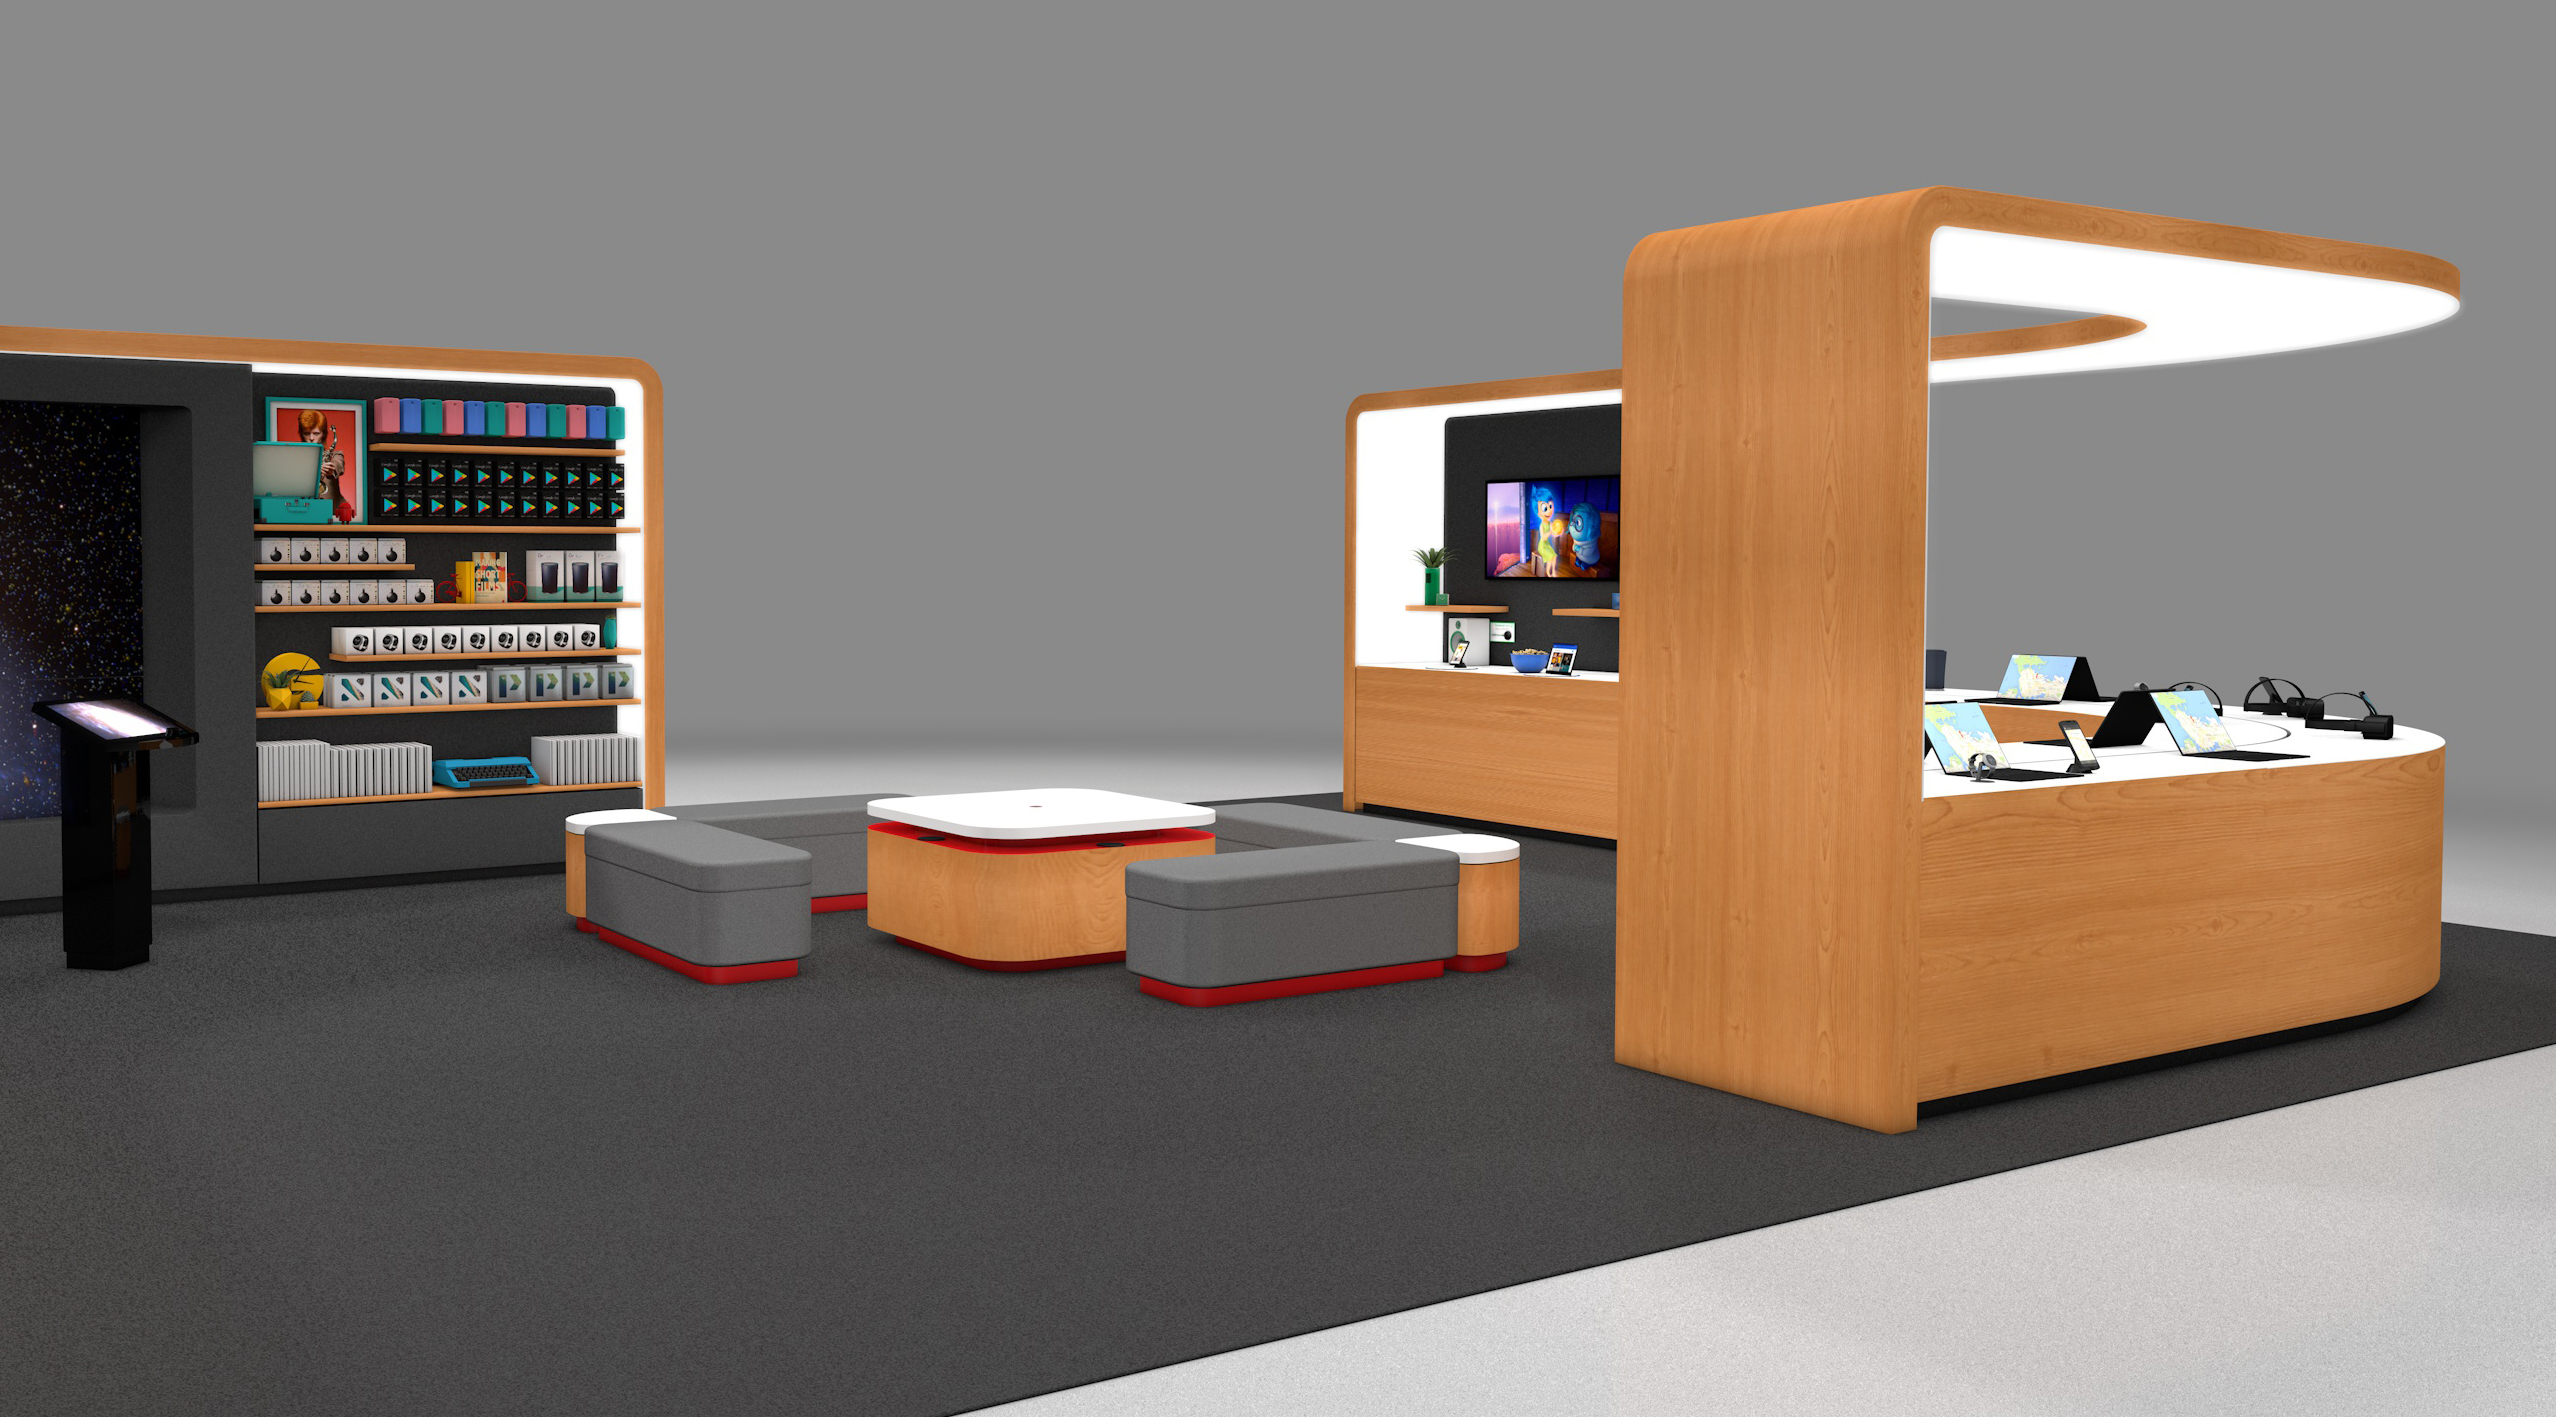 Digital render of google store retail space with an alternate view showing seats and various products displayed on counter and walls